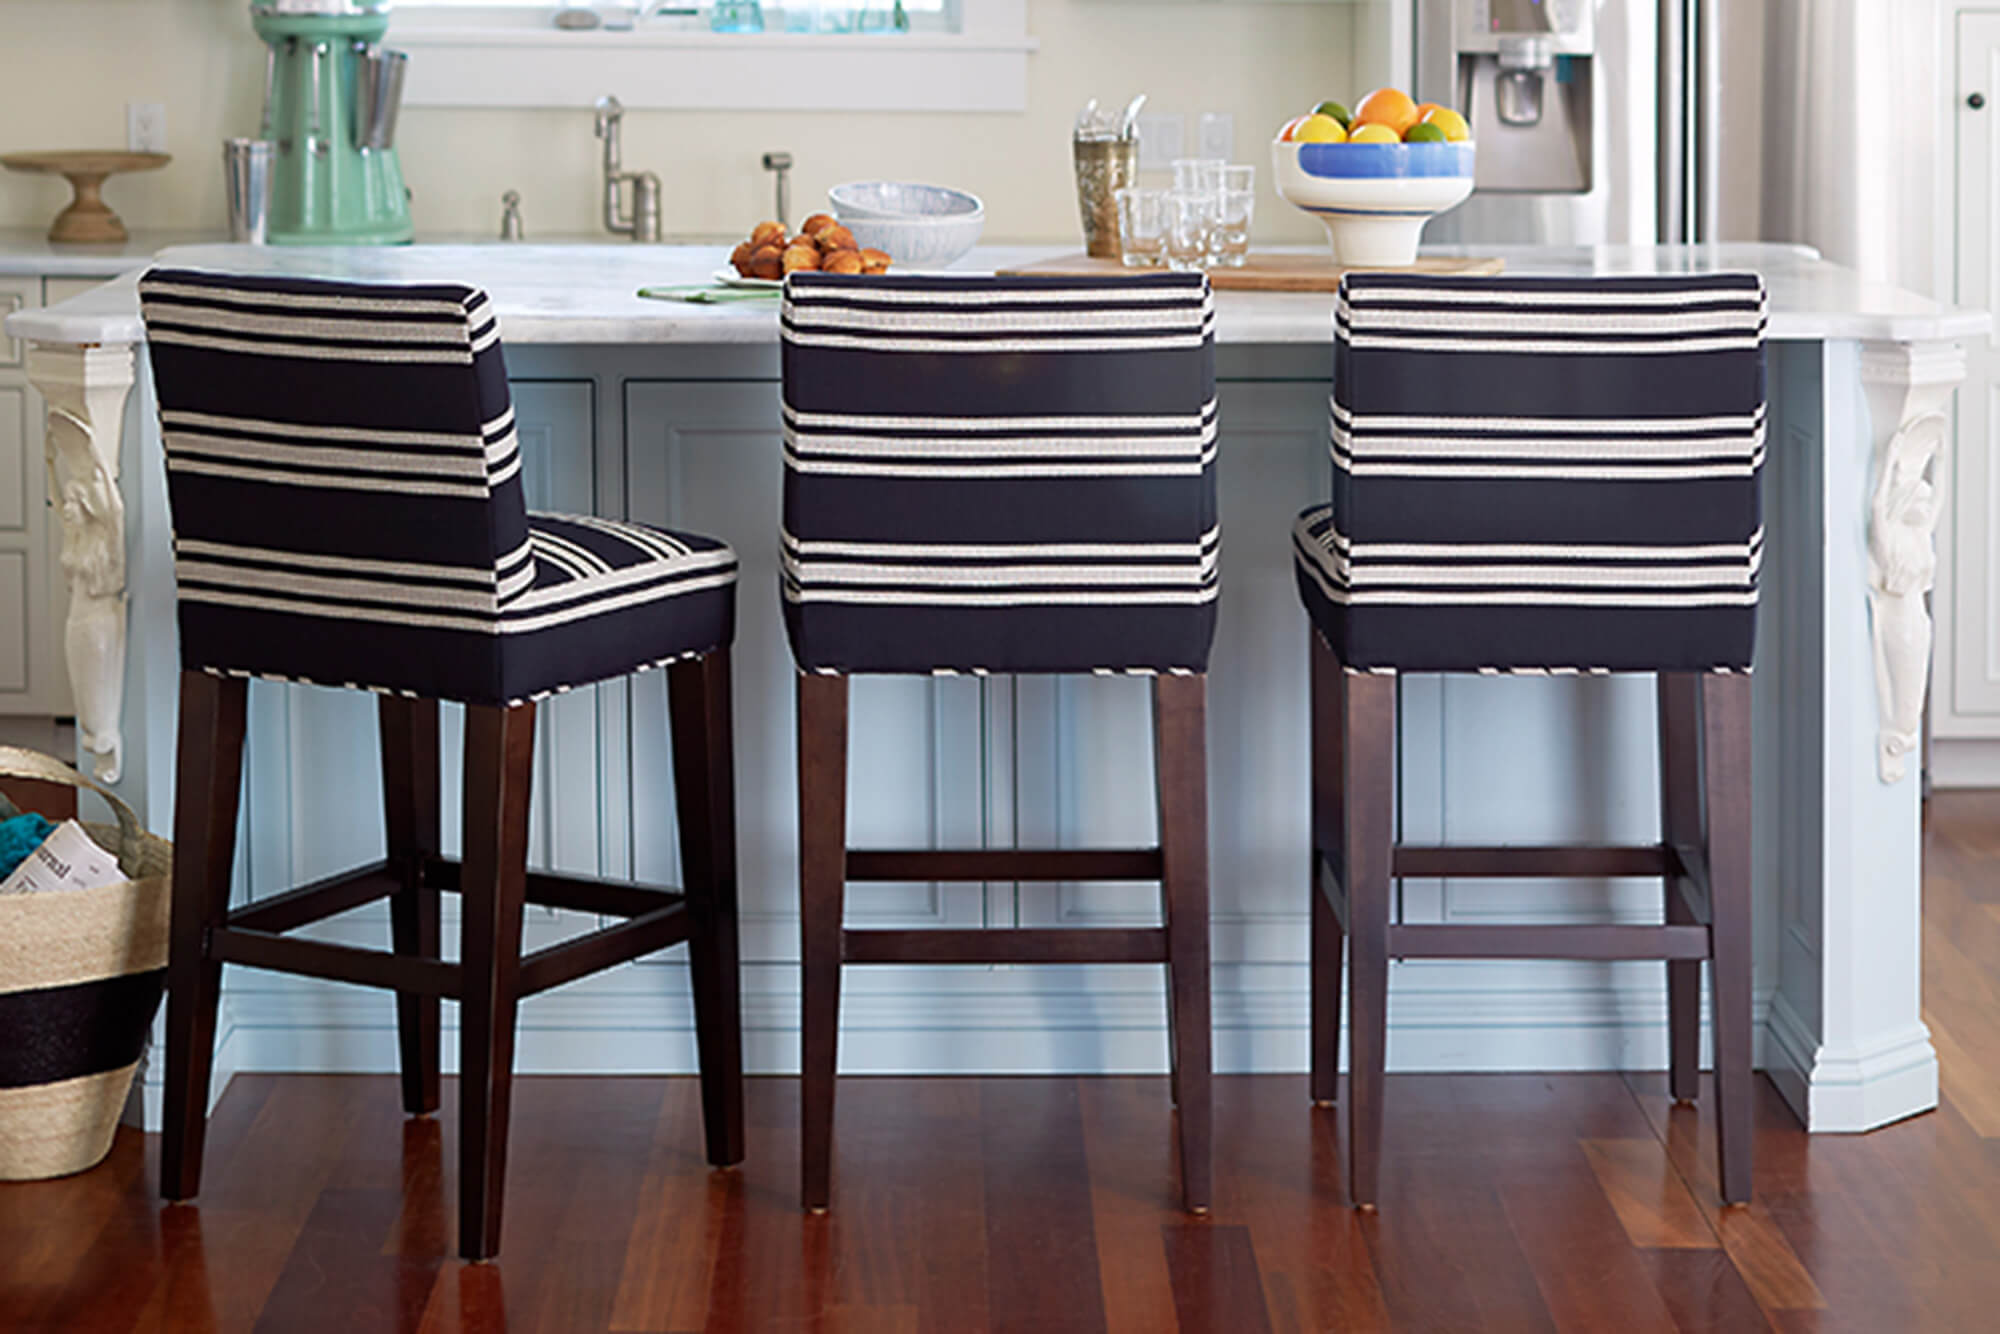 A beach house kitchen with a nautical touch with navy and white striped Sunbrella upholstered barstools